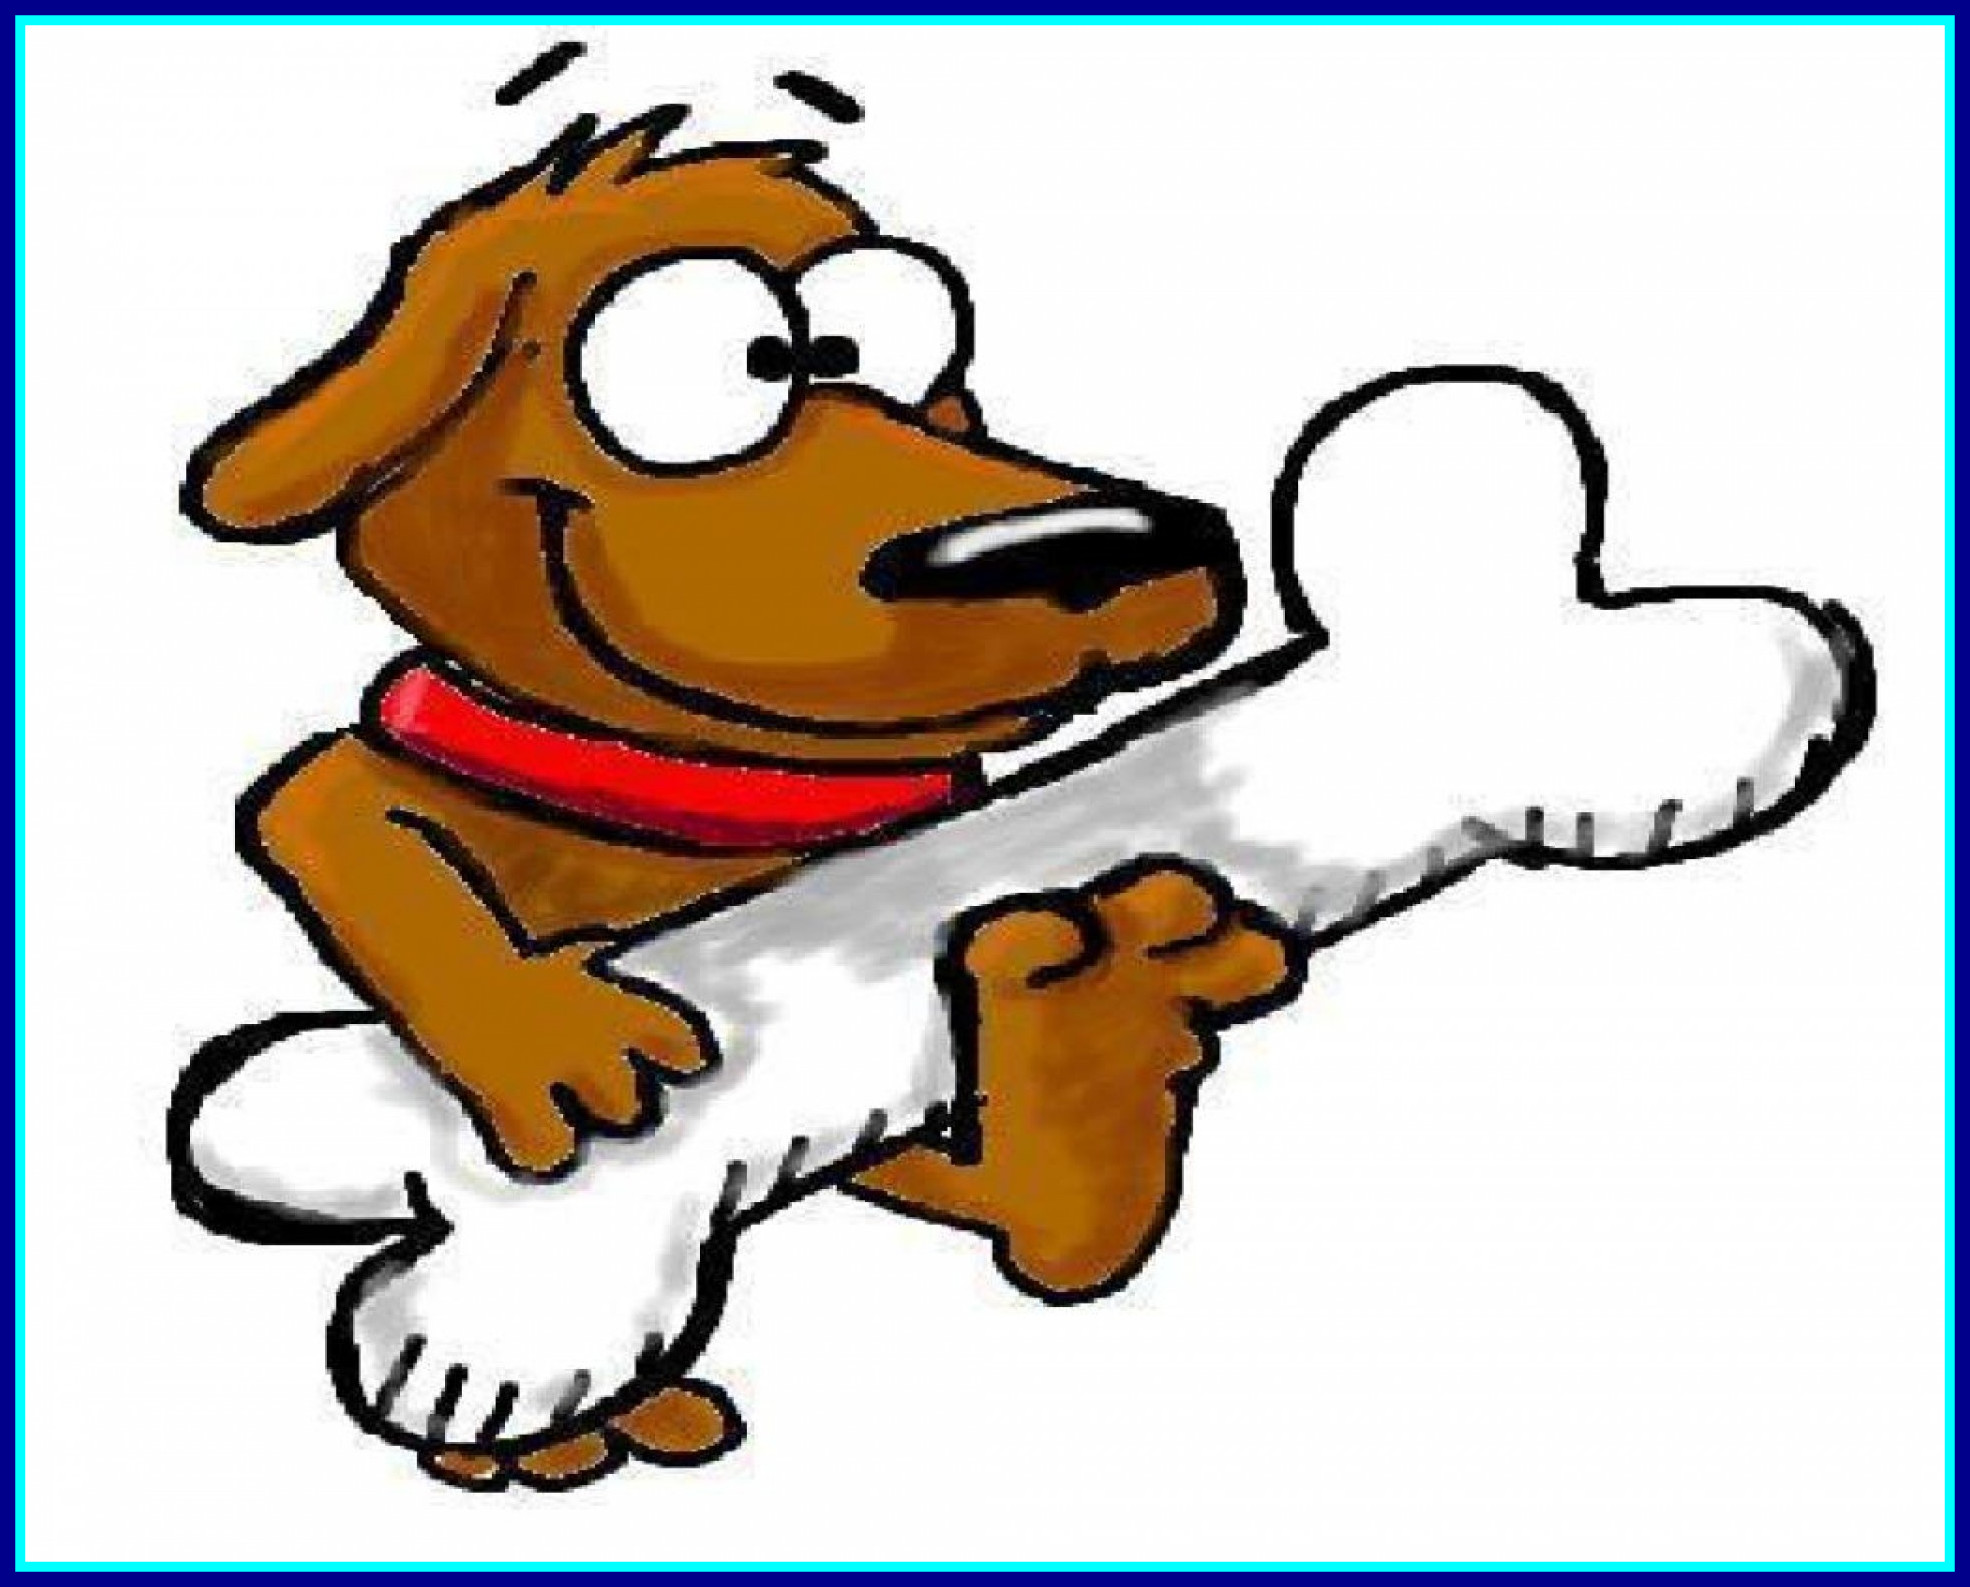 Inspiring dog cartoon stock. Bone clipart animated